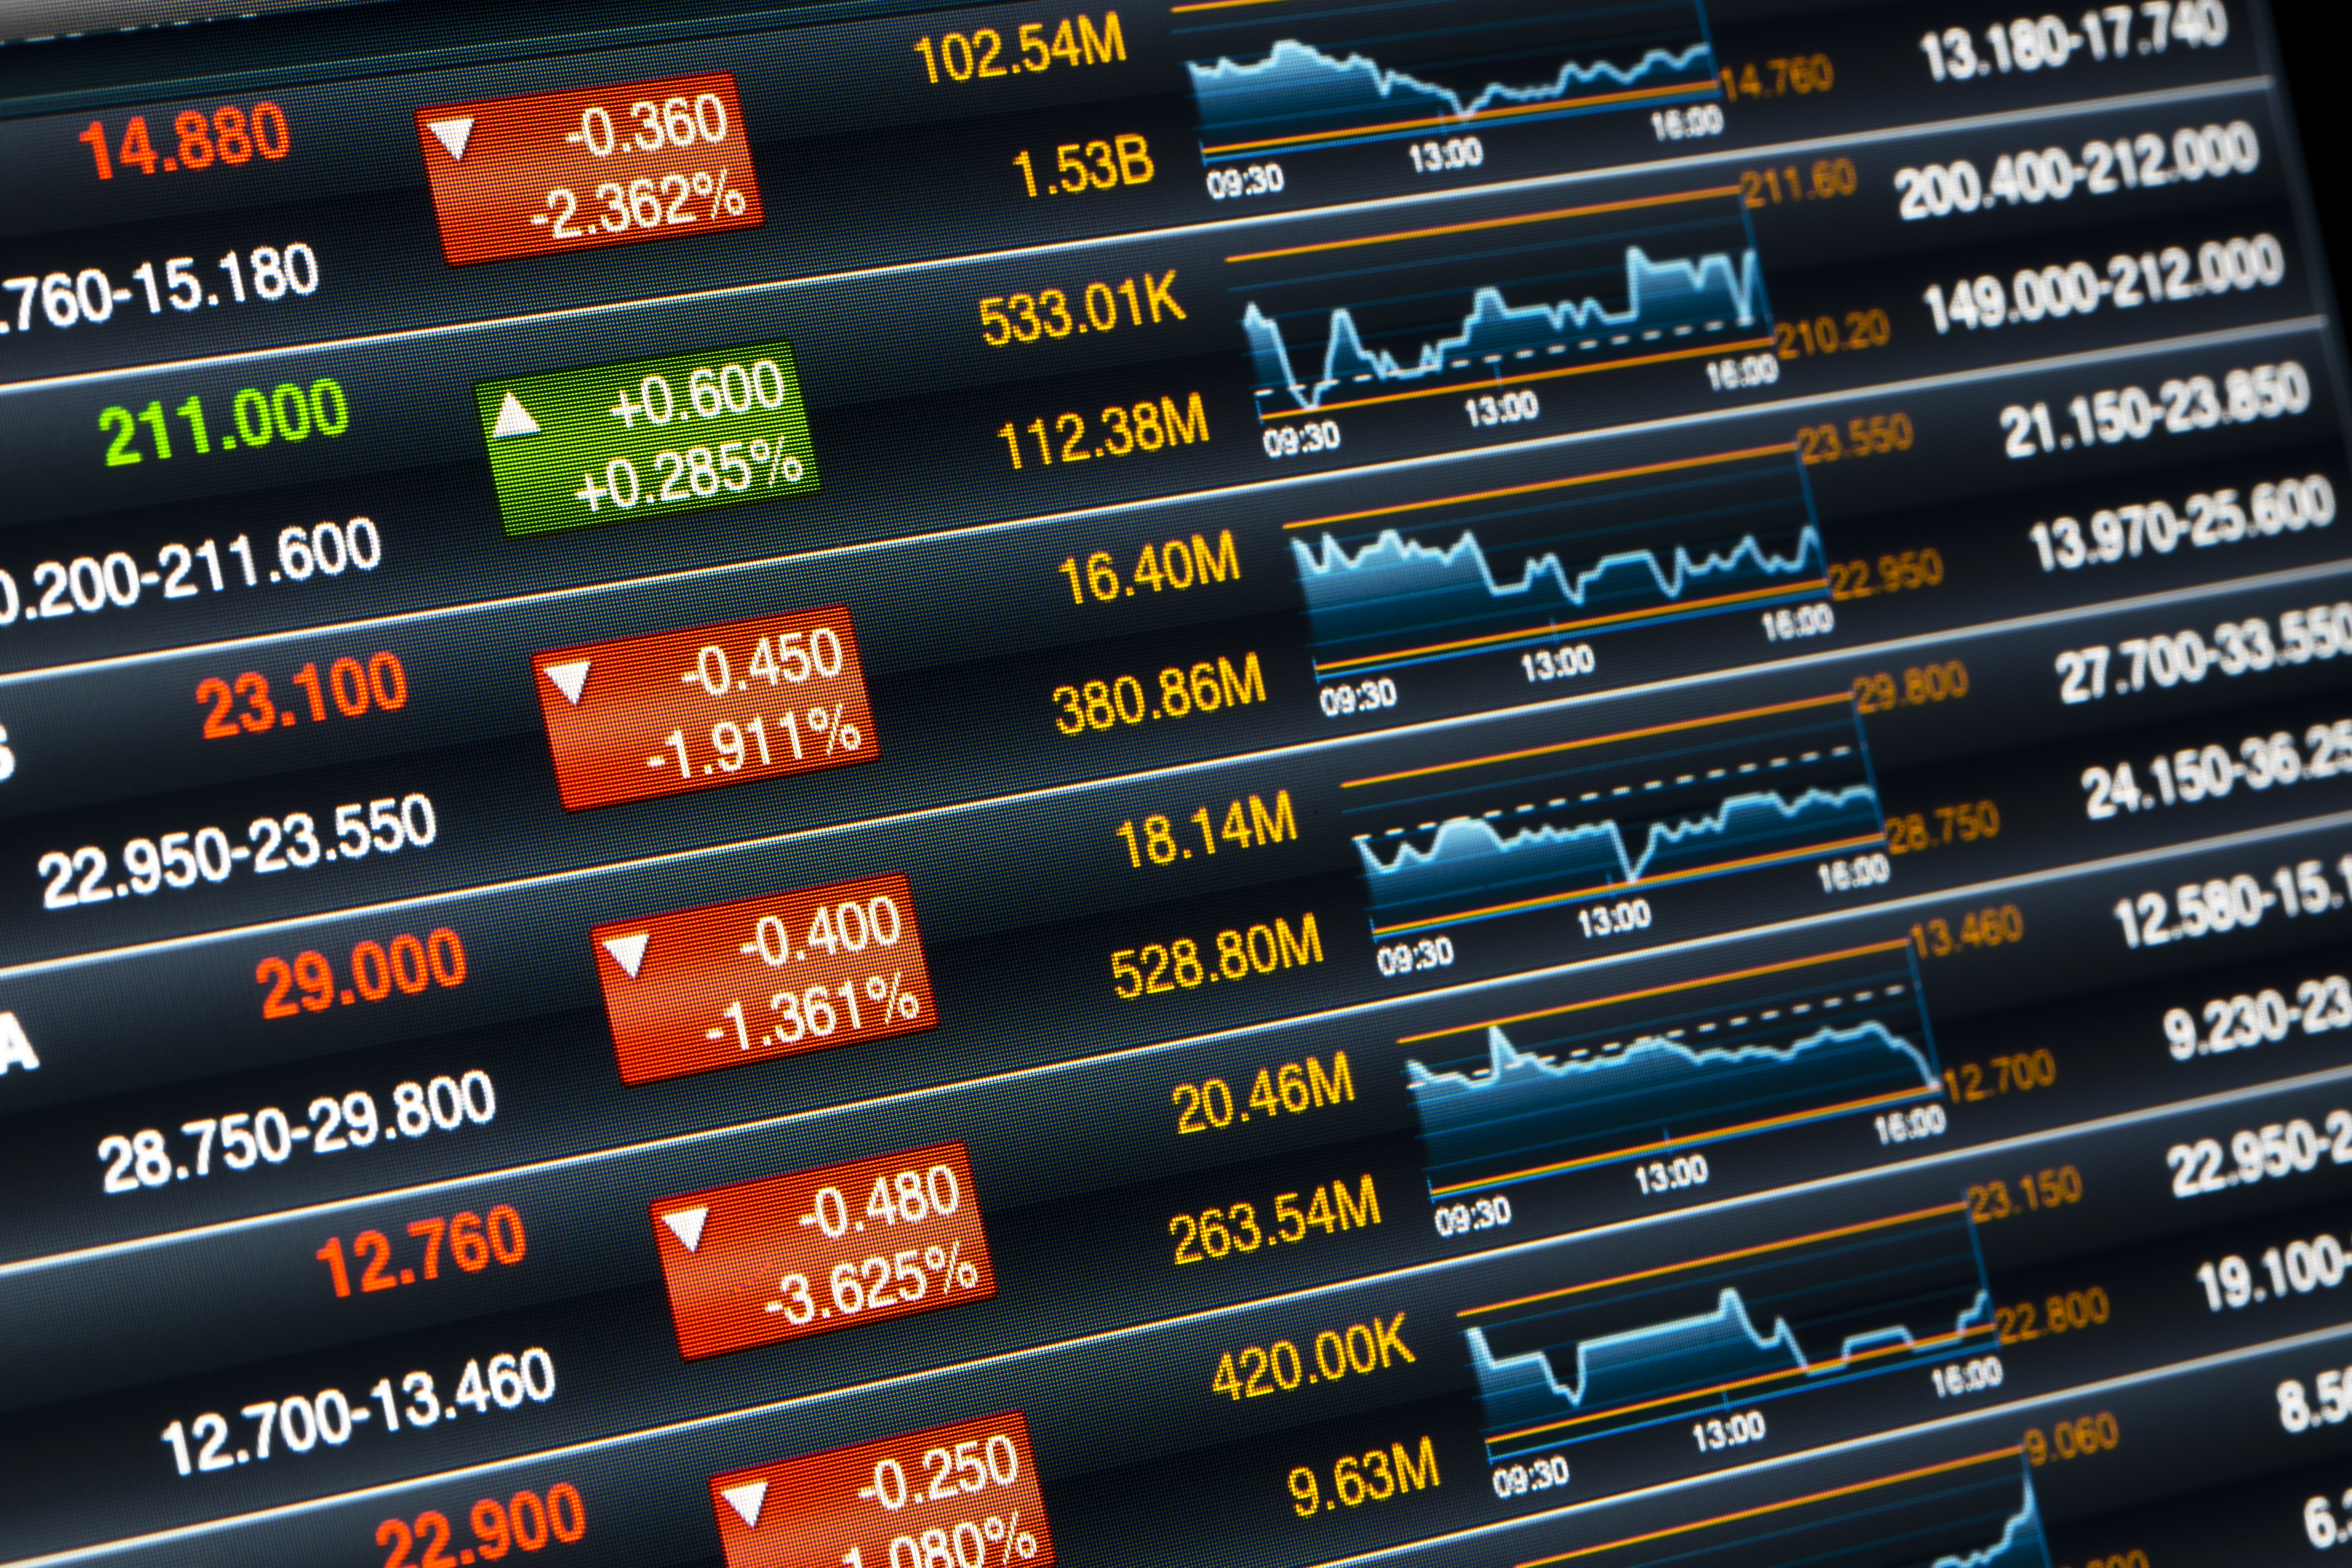 RIA personal securities trading rule